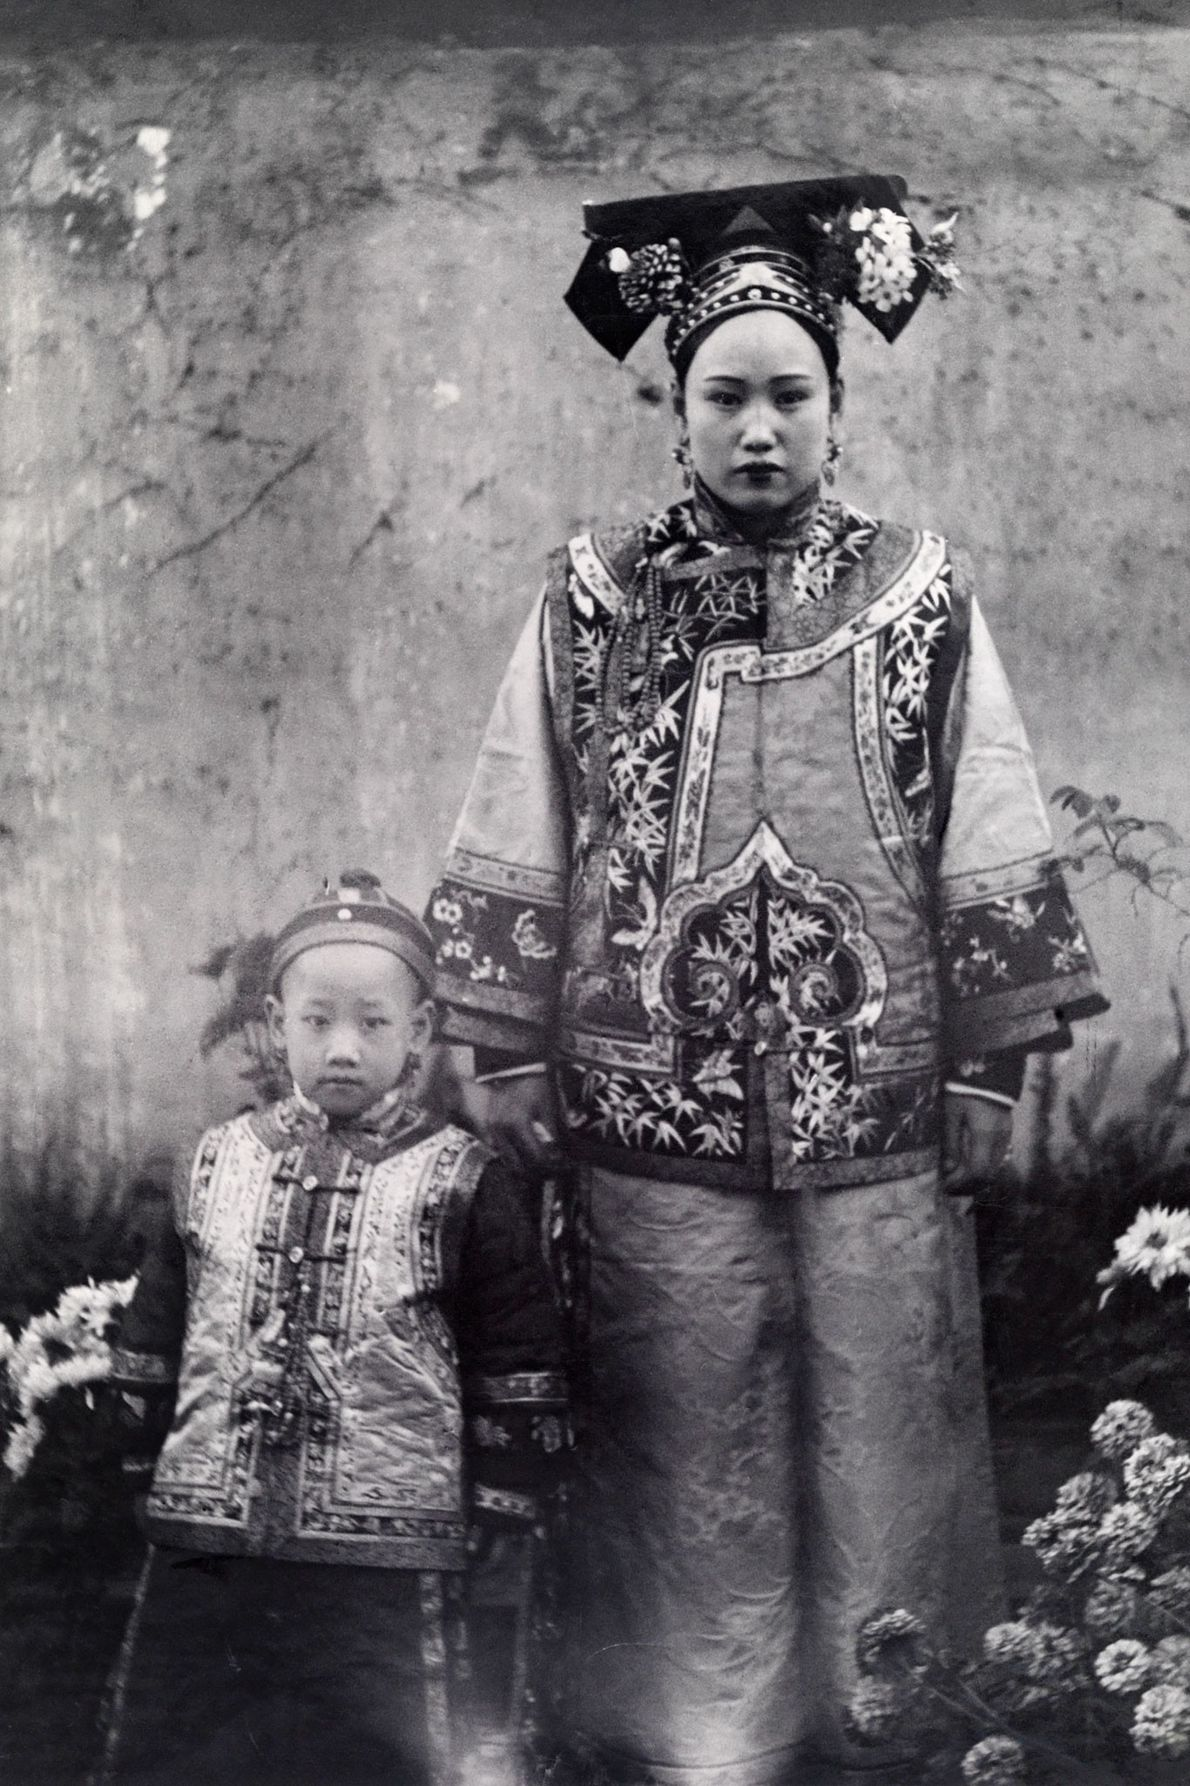 A Chinese mother and her child wear traditional clothing from the Manchurian region of China.